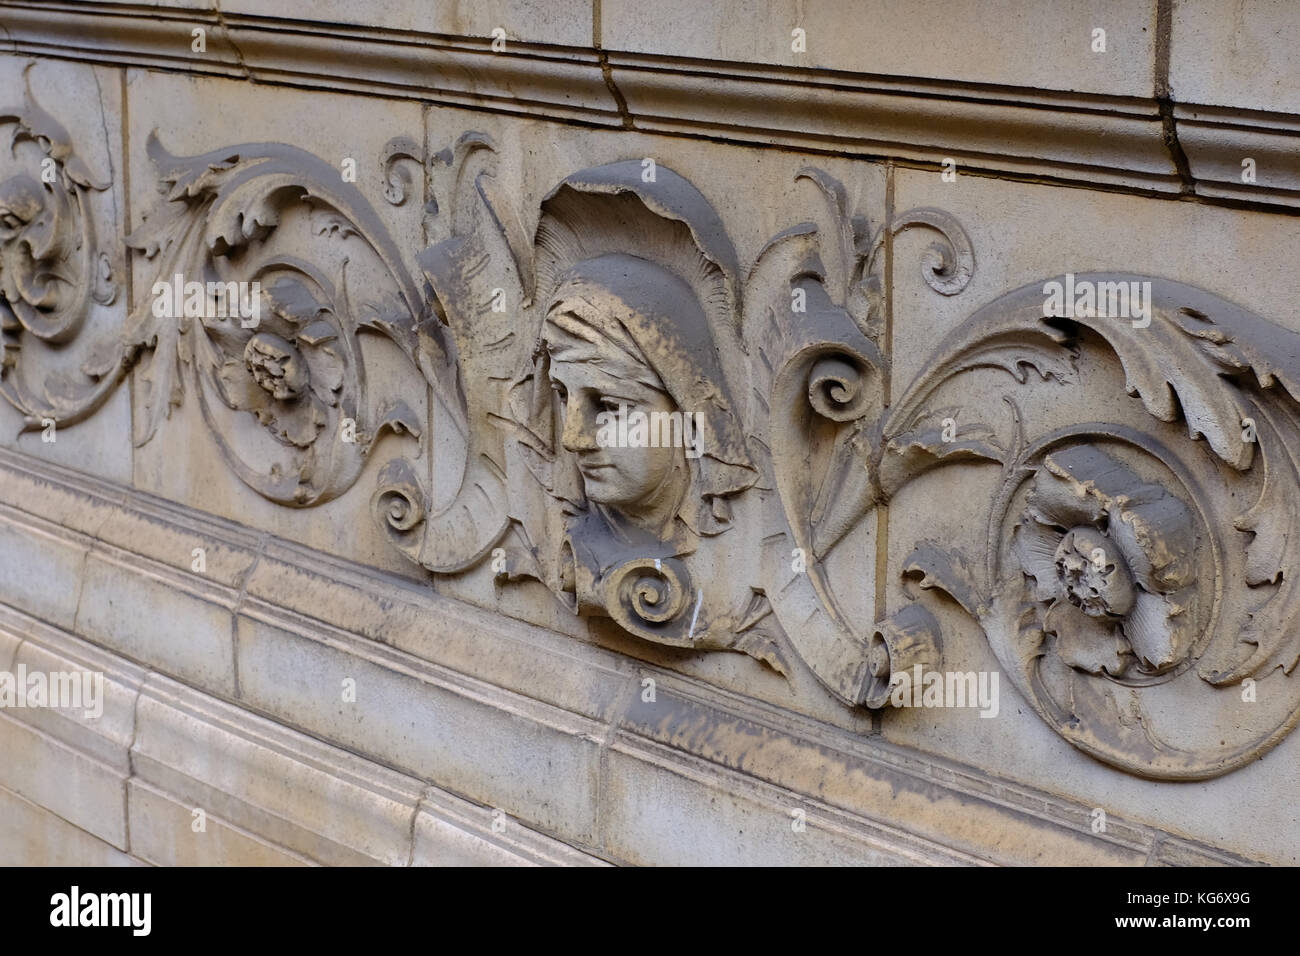 Stone craving on a victorian building in Spanish Place, Marylebone, London - Stock Image